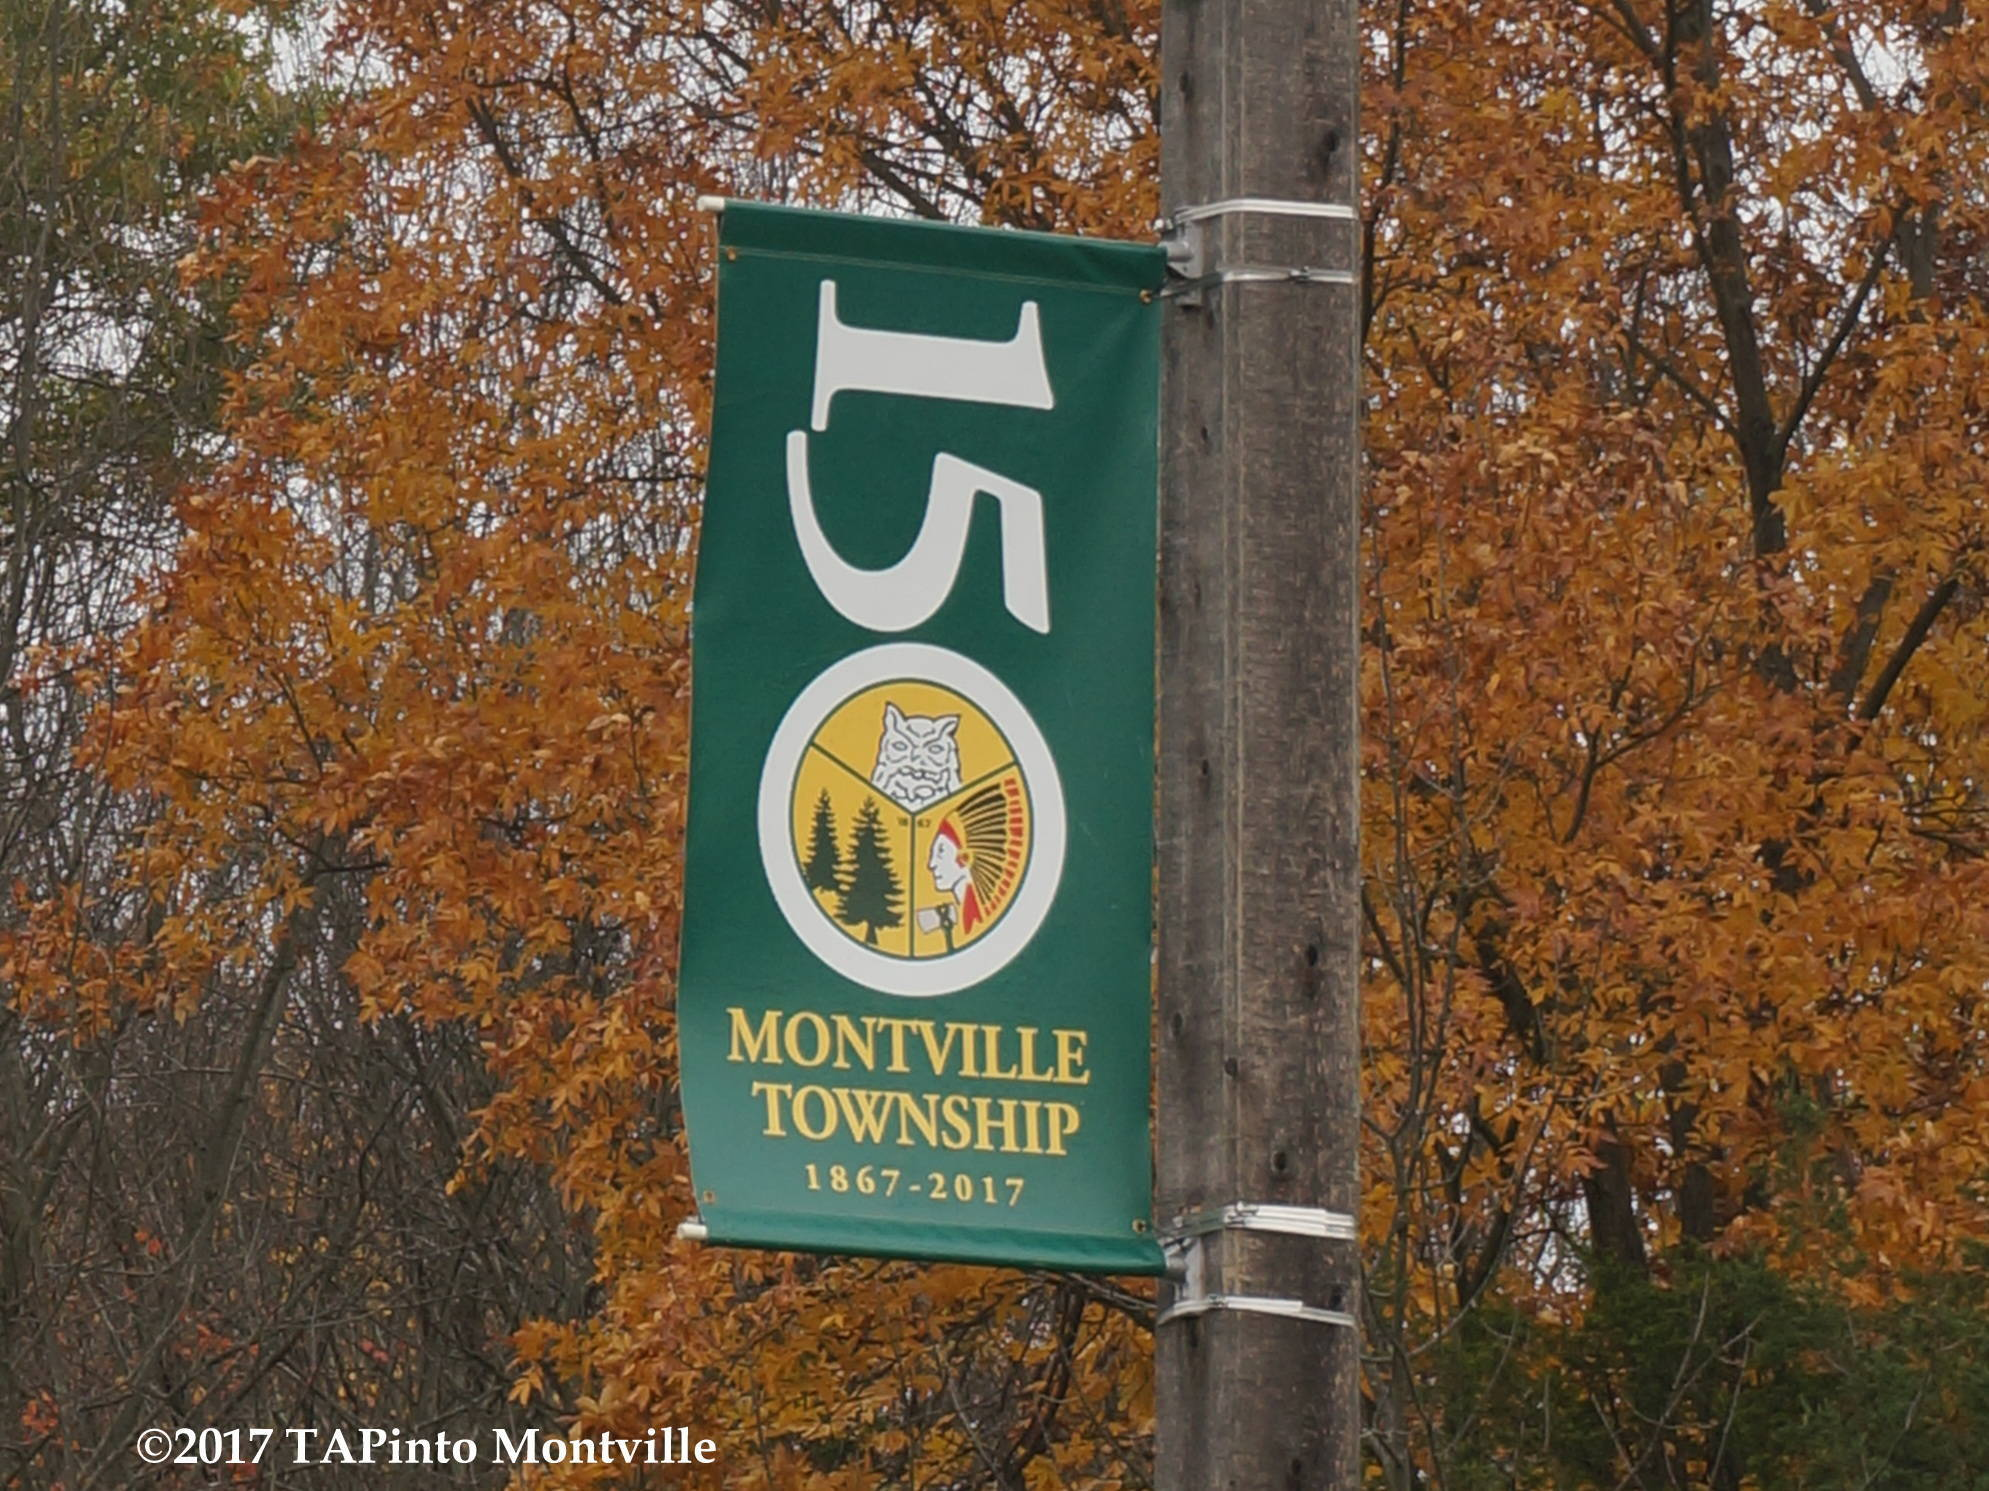 5a57bedbcb01bc946a1a_a_Fall_in_Montville_Township__2017_TAPinto_Montville.JPG